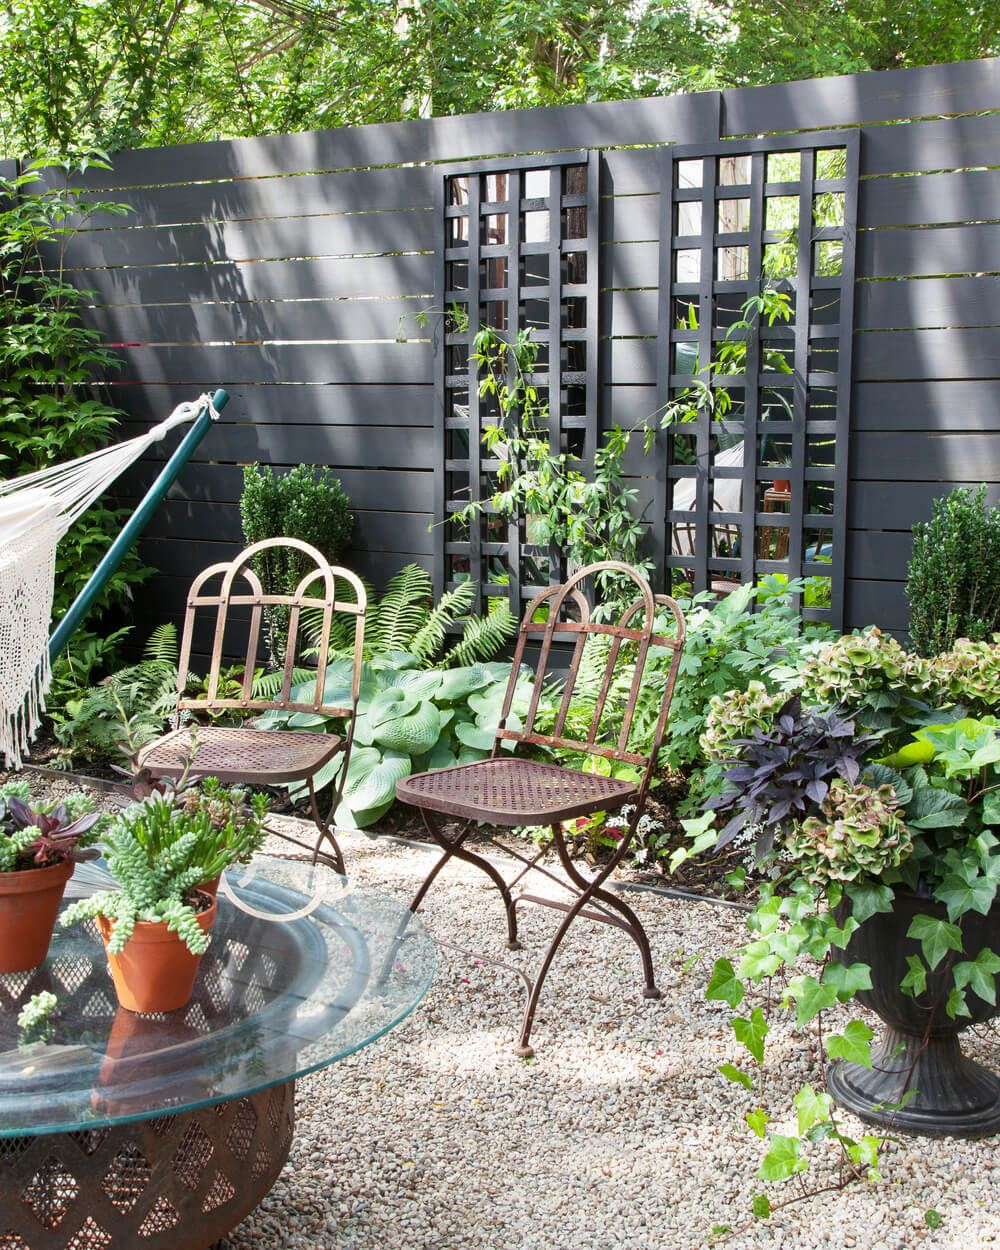 The Best Garden Ideas And Diy Yard Projects: 24 Best DIY Garden Trellis Projects (Ideas And Designs